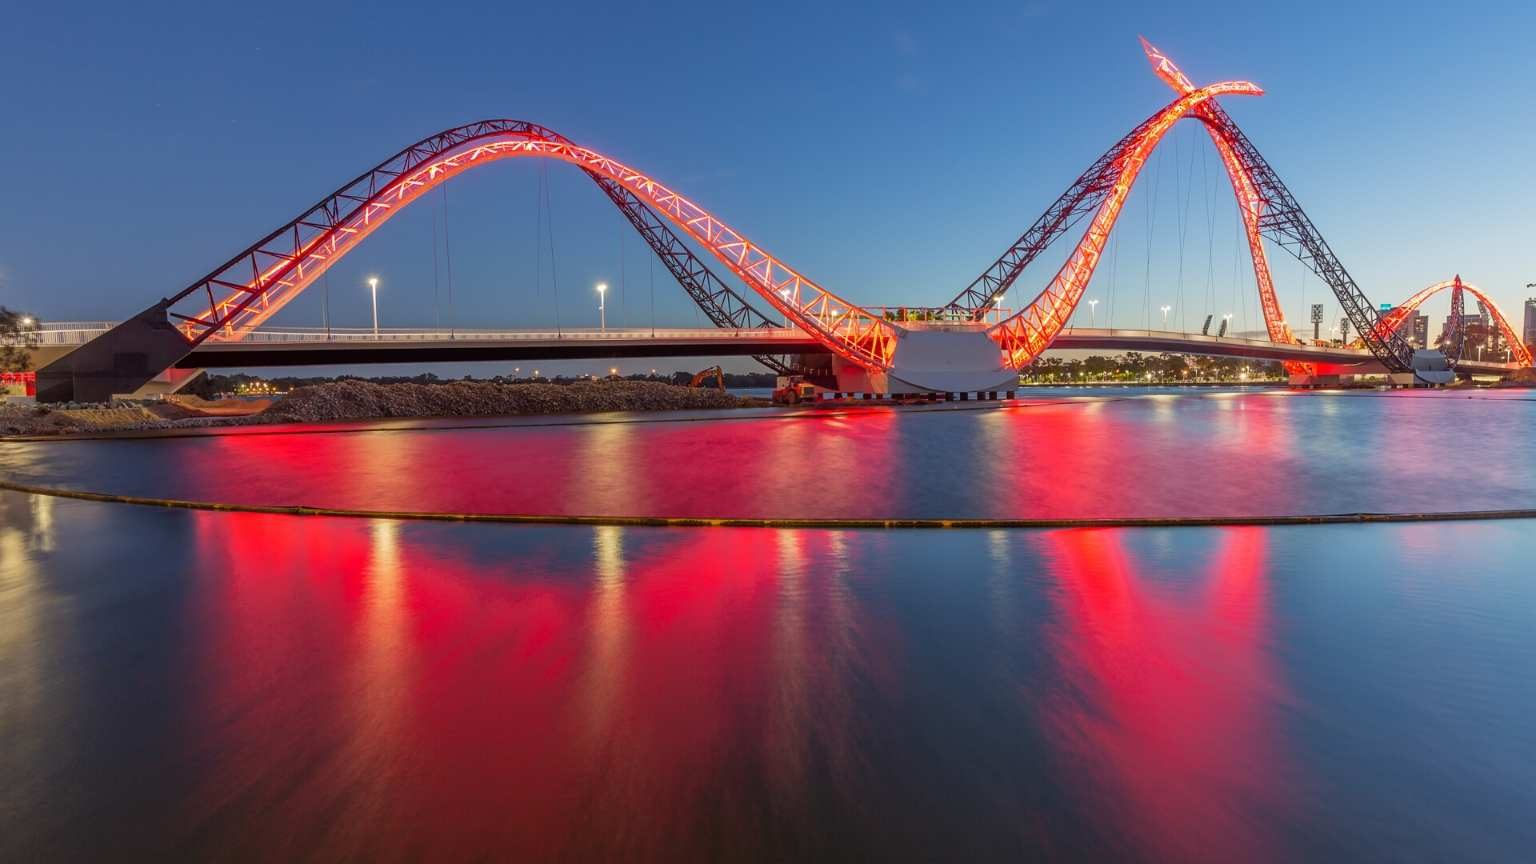 Matagarup Bridge with red lights at night